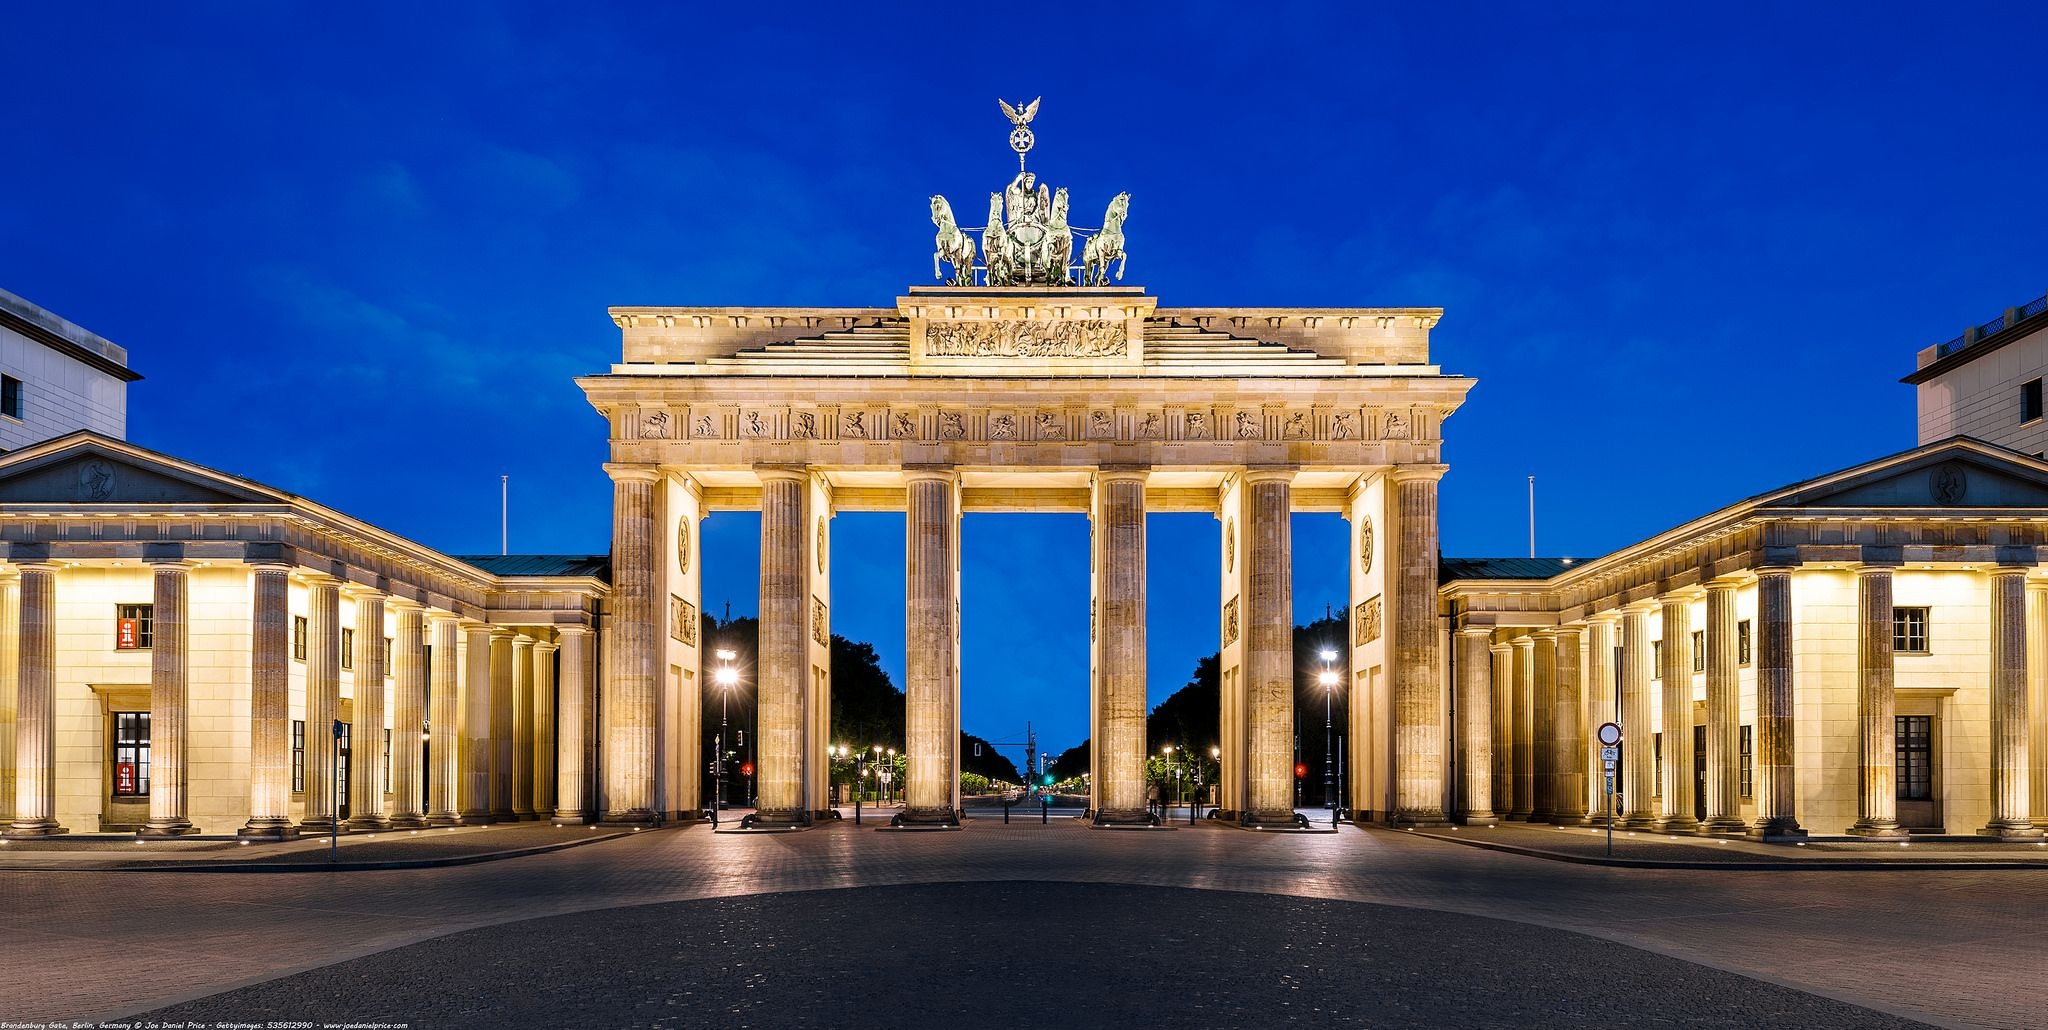 Blue Hour The Brandenburg Gate Brandenburger Tor Berlin Germany The Triumphal Arch Is An 18th Century Neoclassical Monument Built On The Orders Of Pruss Brandenburg Gate City Architecture Blue Hour